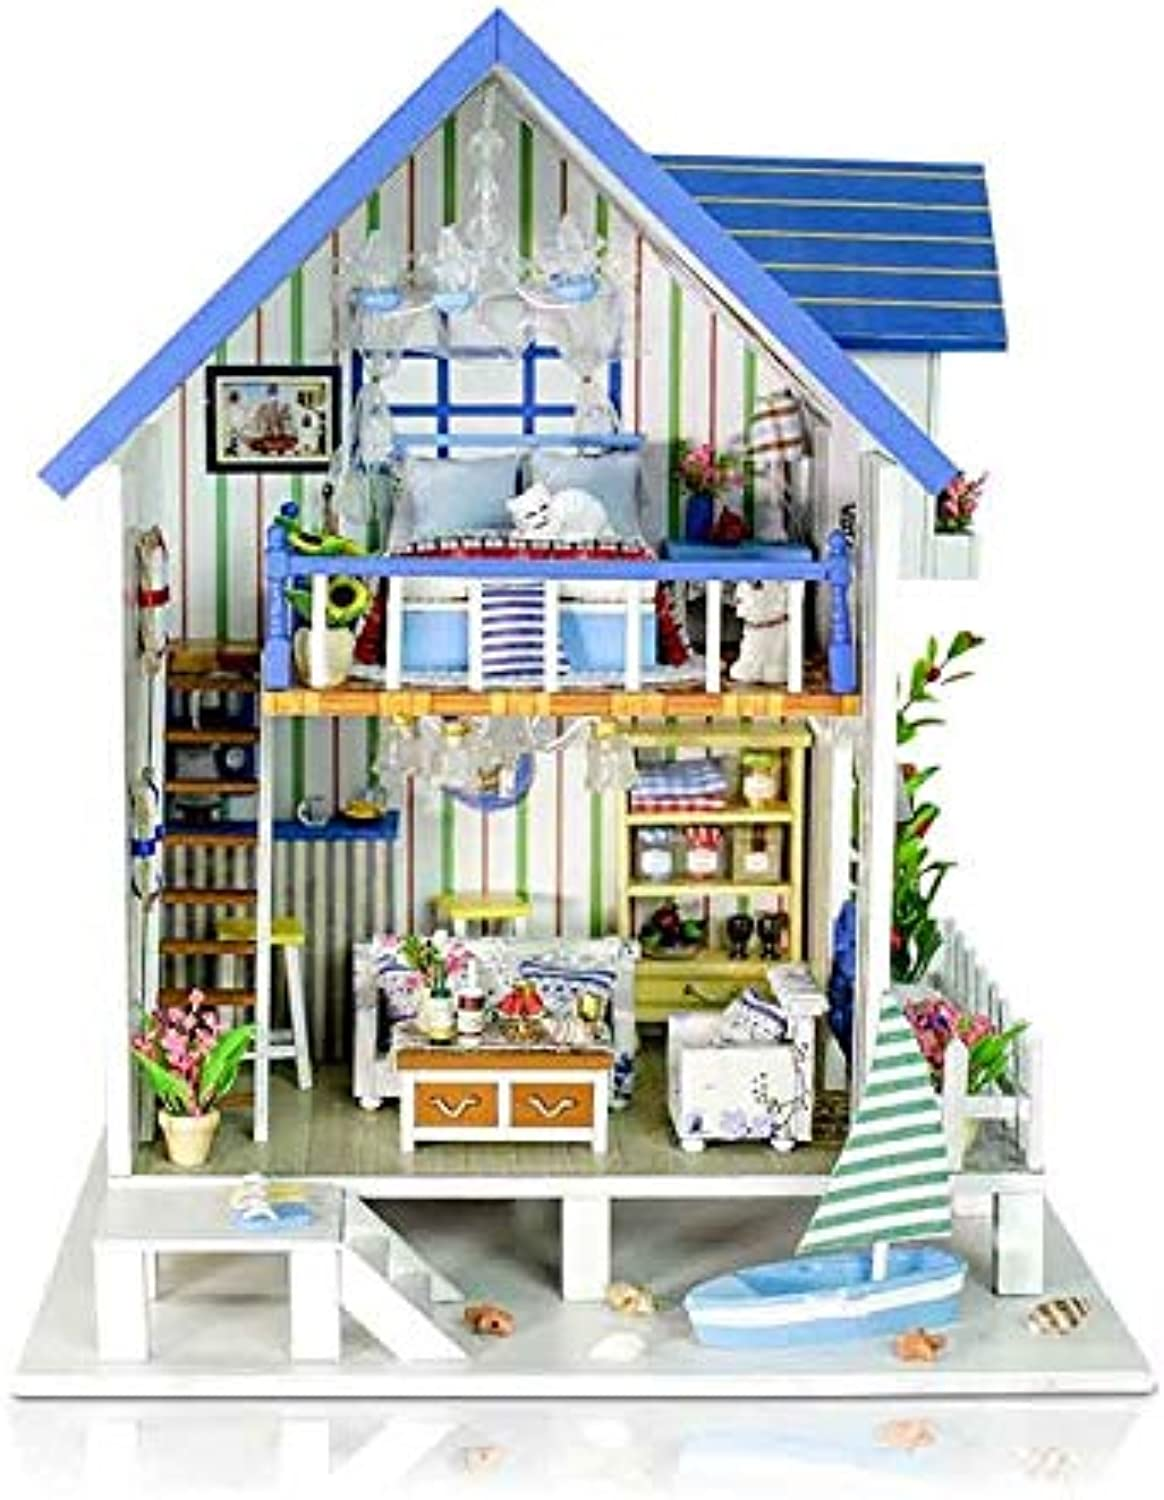 DIY Doll House Wooden Doll Houses Miniature DIY Handmade Dollhouse Furniture Kit Room Led Lights Kids Birthday Gifts 23  19  28cm